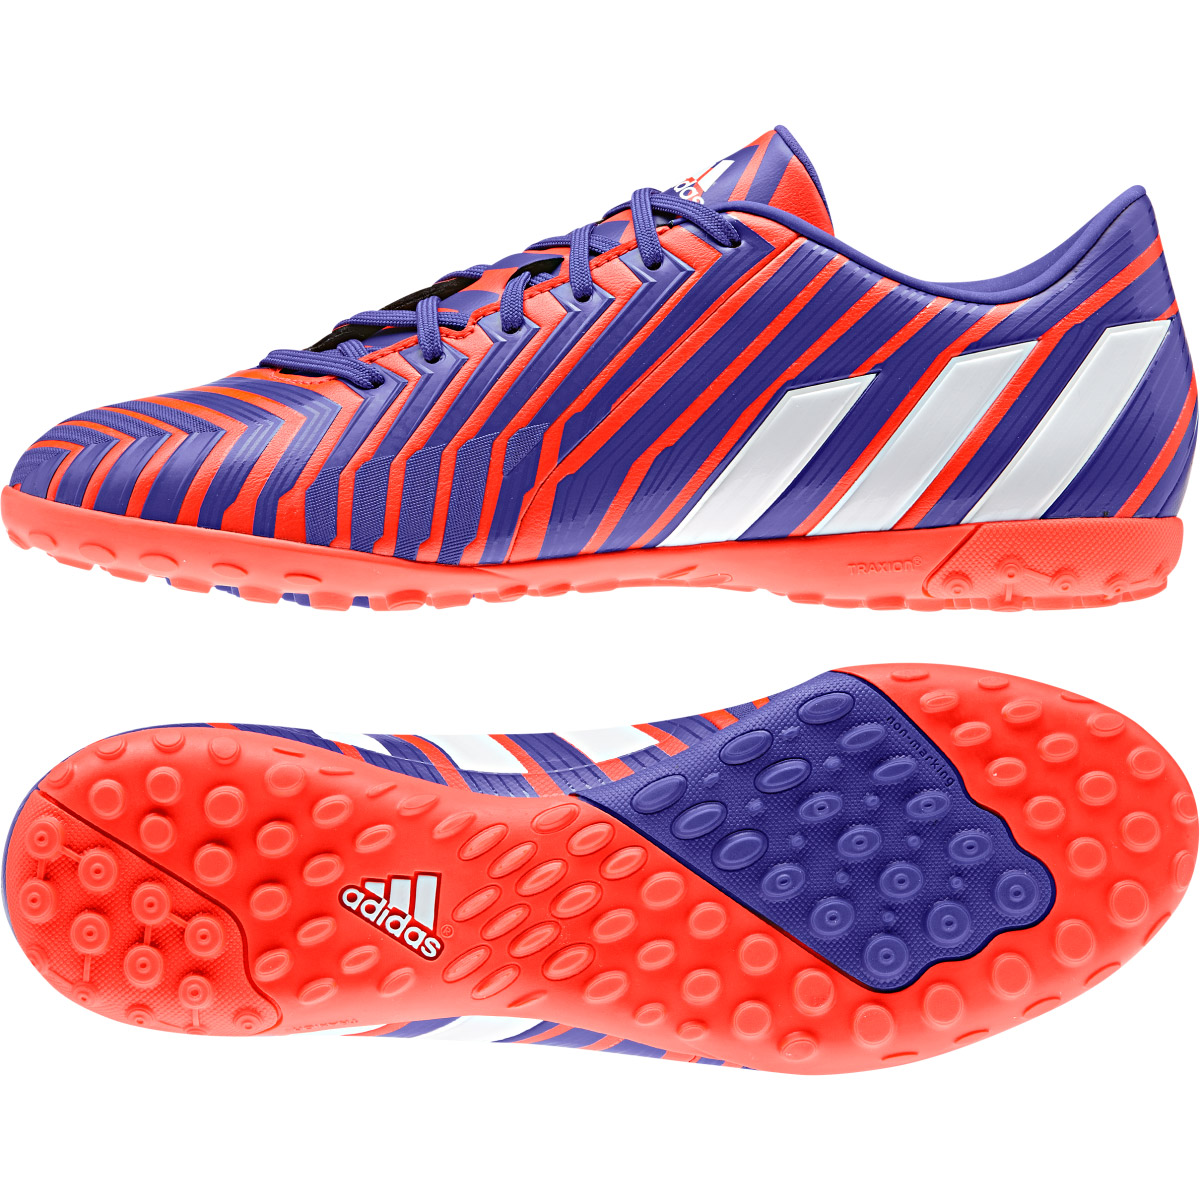 Adidas Predator Absolado Instinct Astroturf Trainers Red